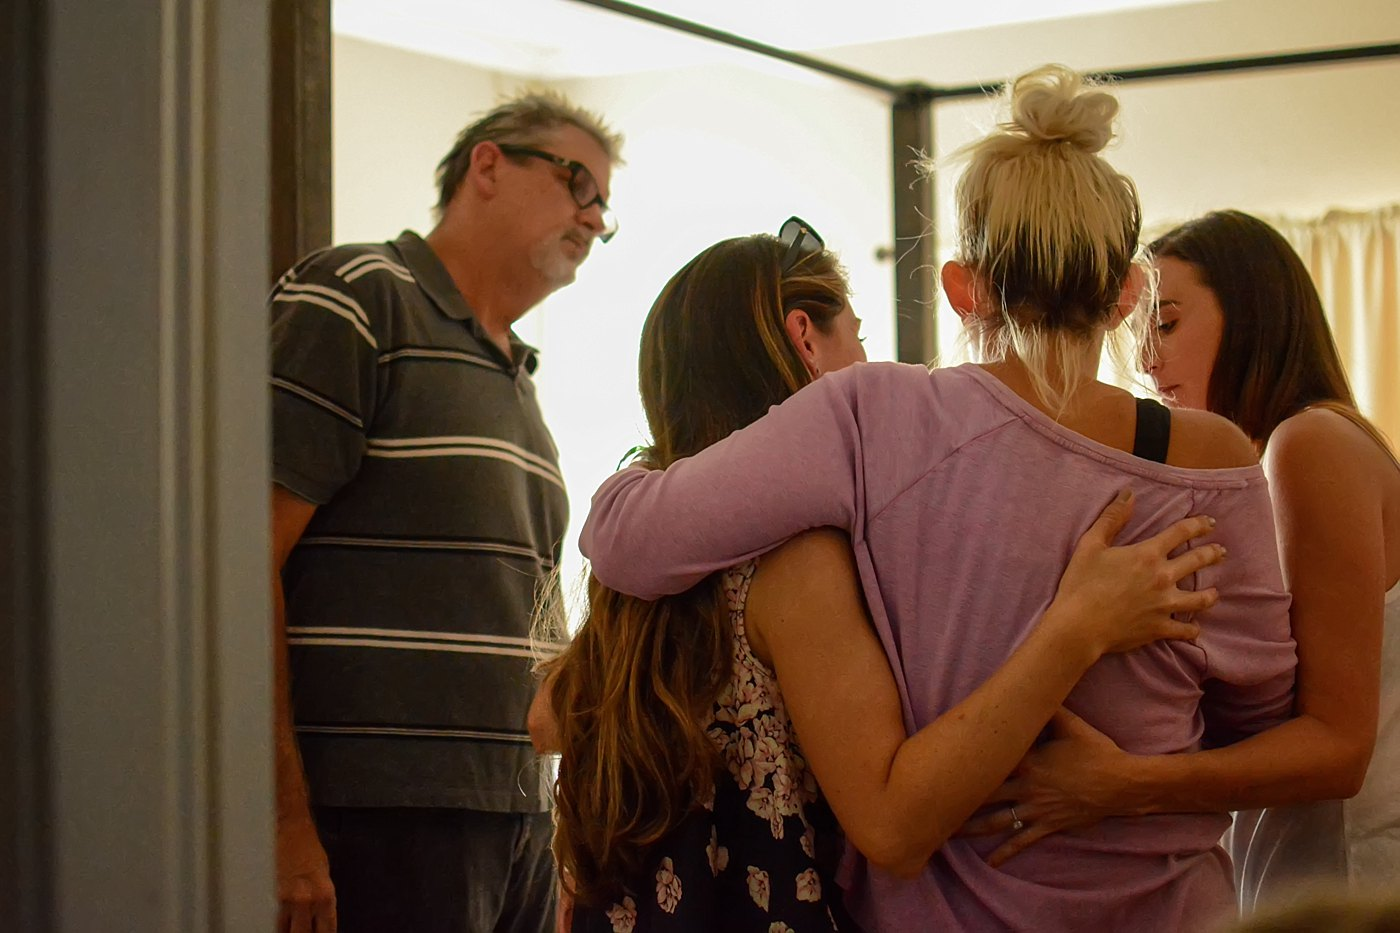 friends lead her into her room homecoming las vegas shooting victim Chelsea Romo Captured Grace by Erin